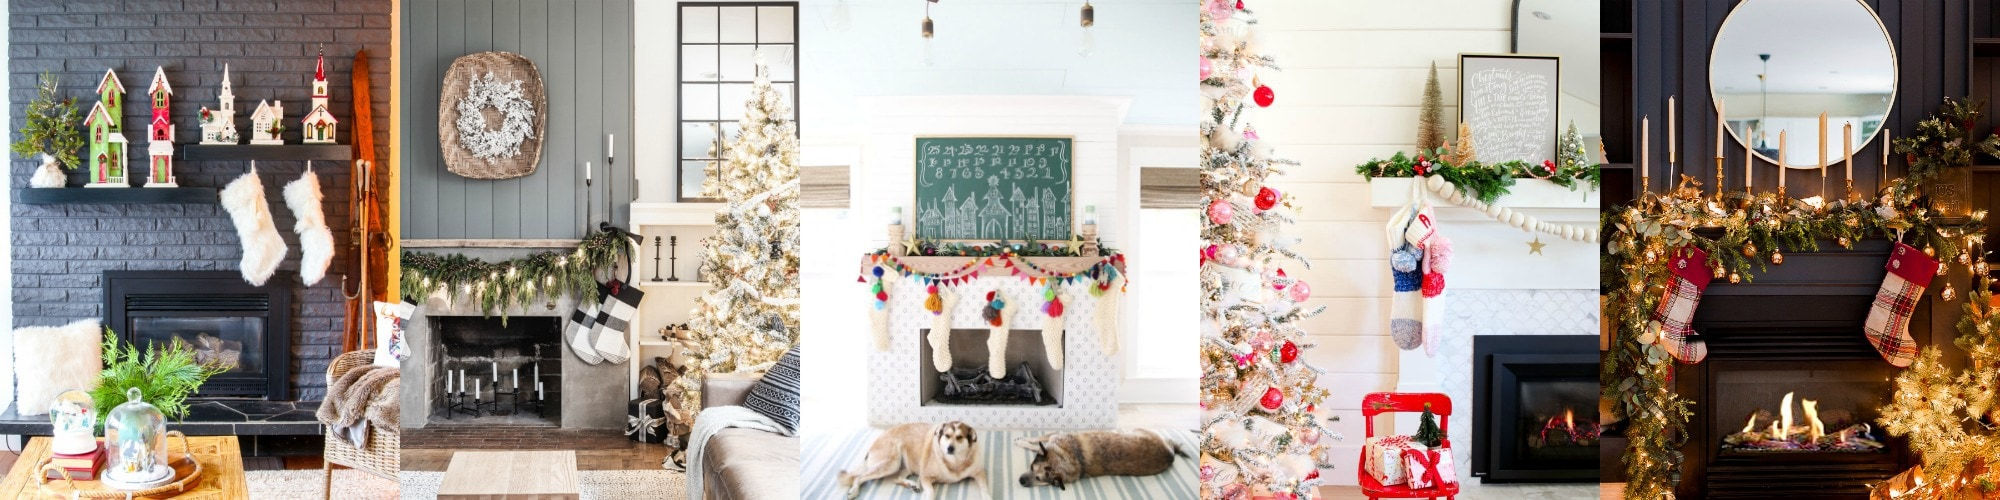 diy christmas mantel decor